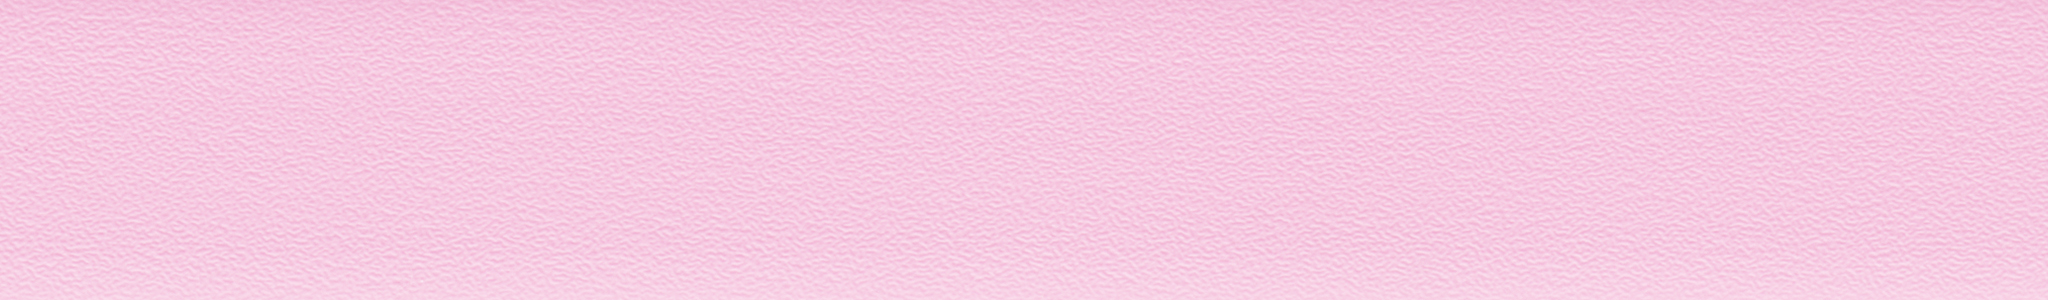 HU 138534 Chant ABS Rose Perle 101